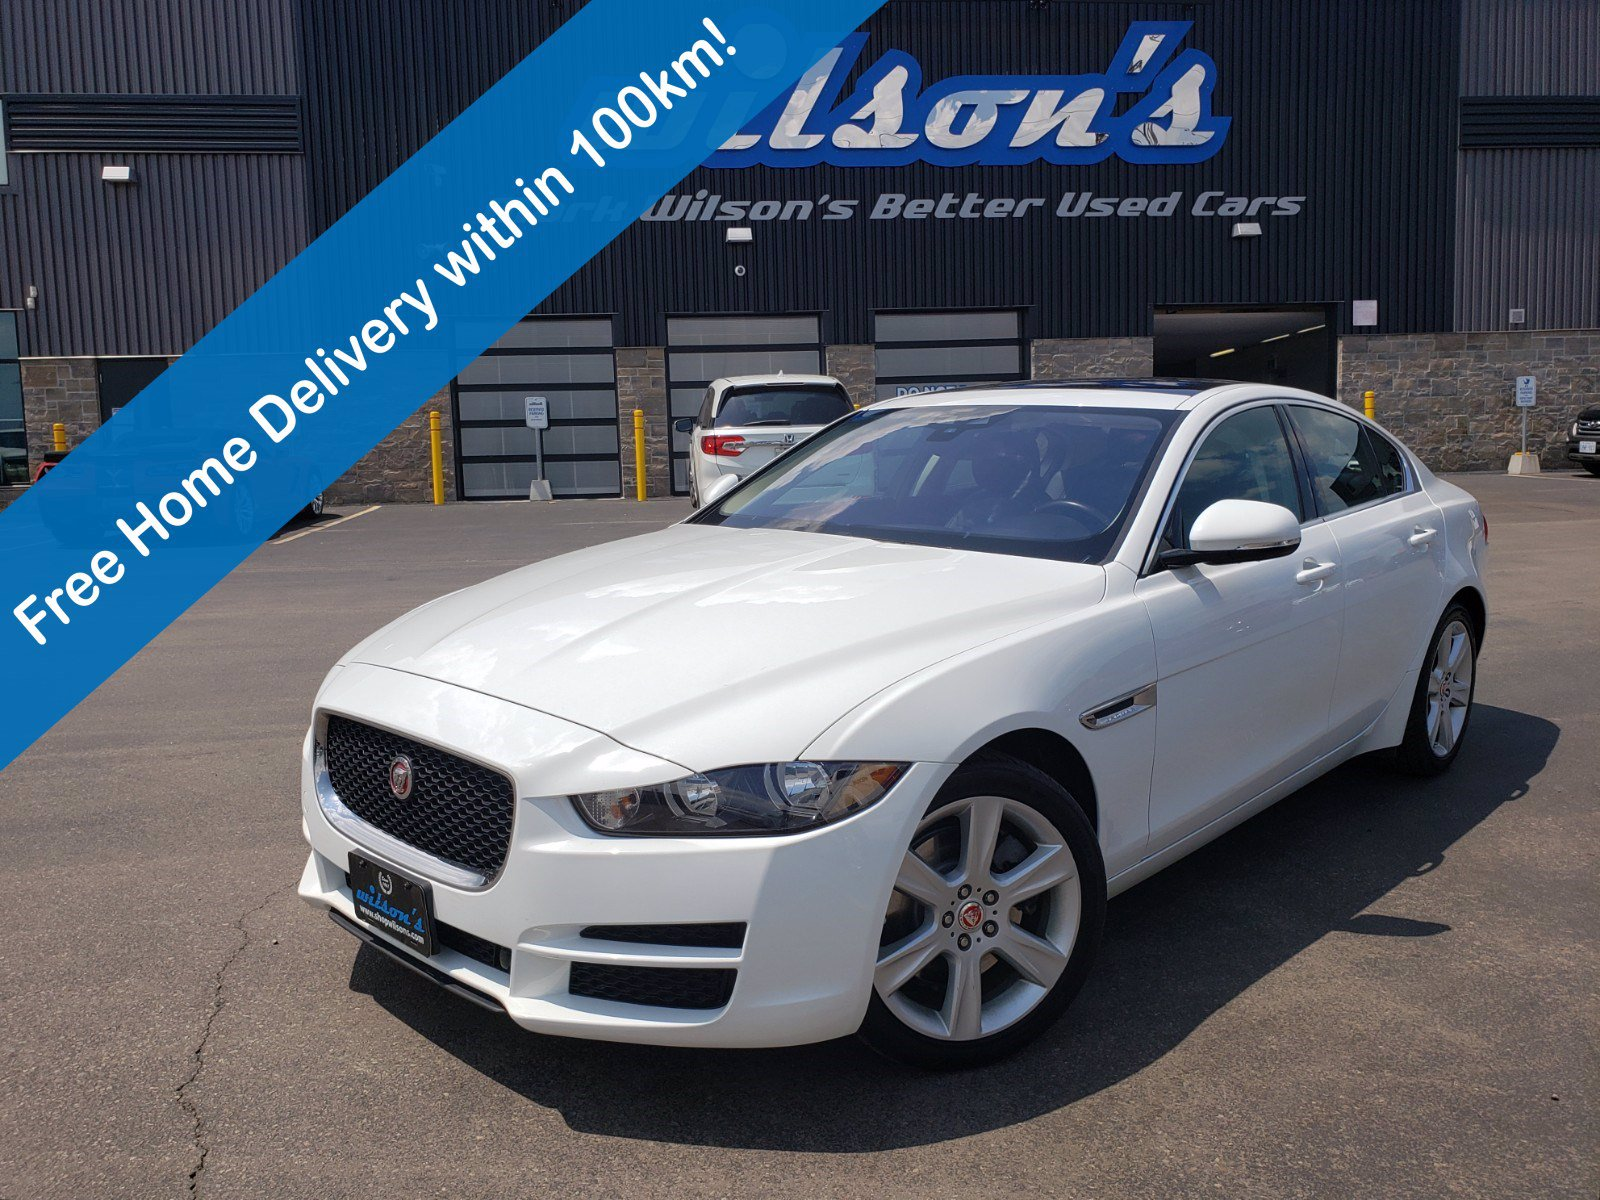 Certified Pre-Owned 2018 Jaguar XE Prestige 25t AWD, Leather, Navigation, Sunroof, Rear Camera, Bluetooth, 18